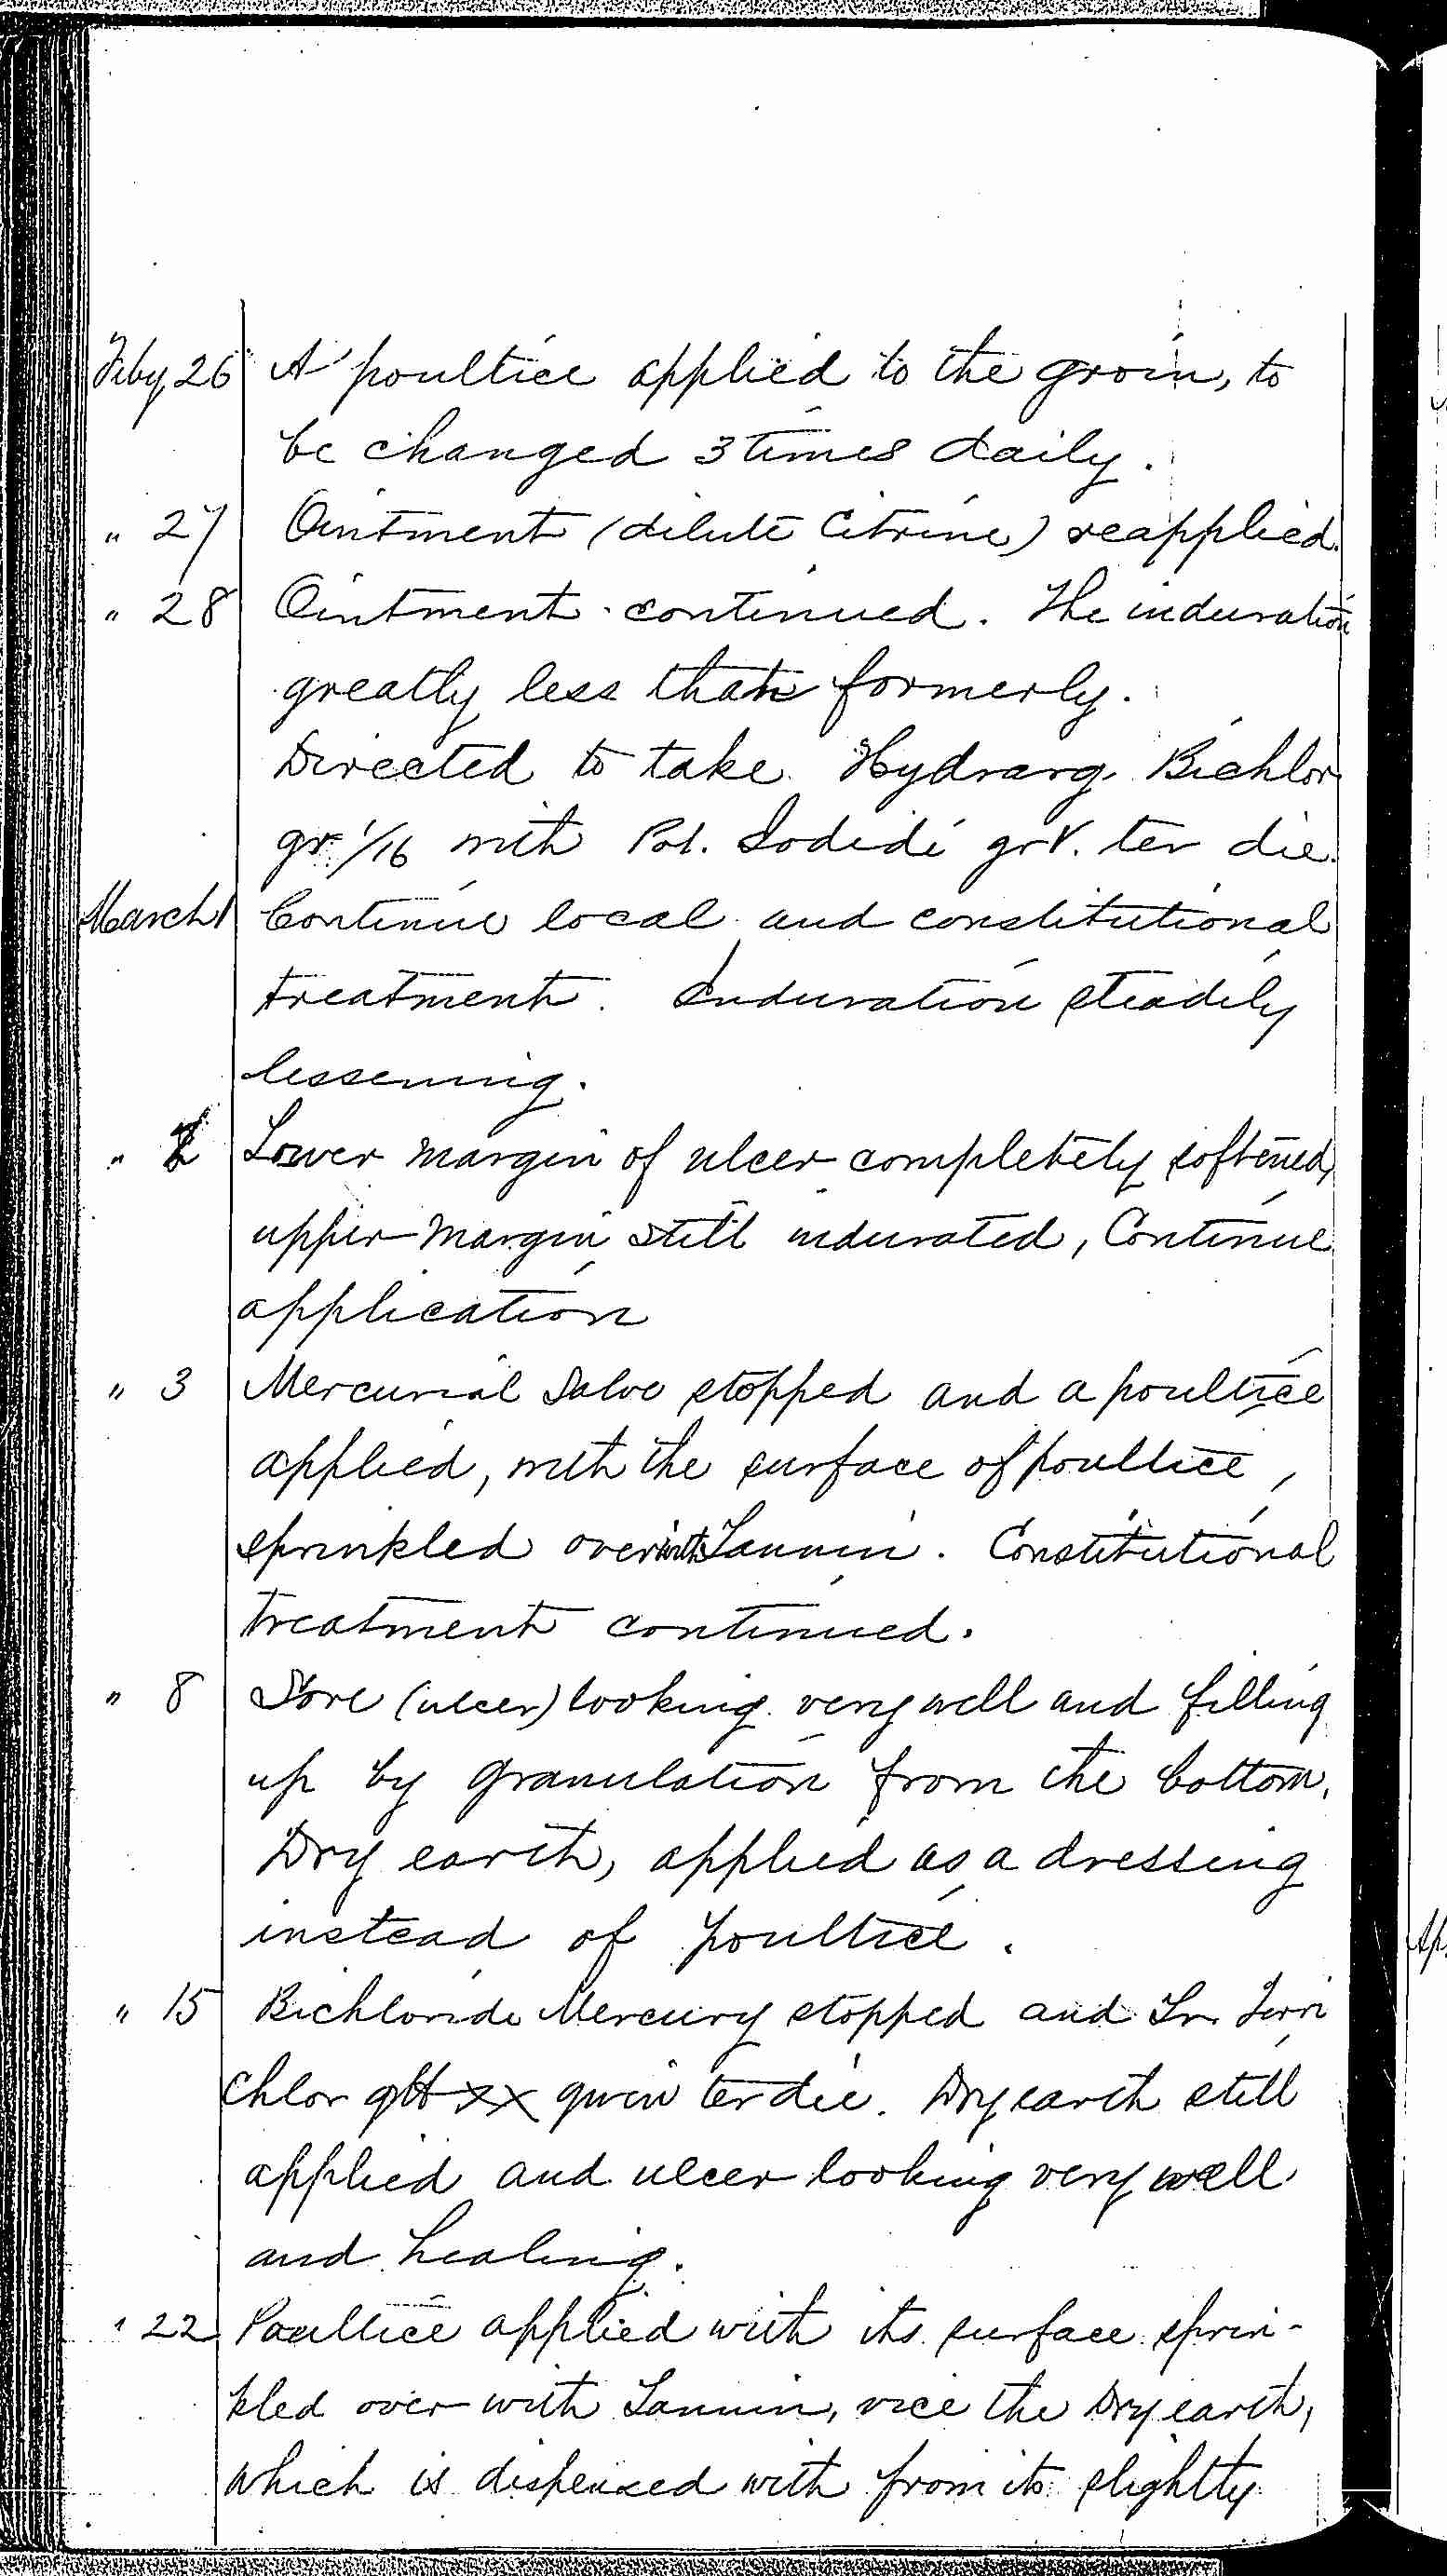 Entry for John H. Denning (first admission page 4 of 9) in the log Hospital Tickets and Case Papers - Naval Hospital - Washington, D.C. - 1868-69